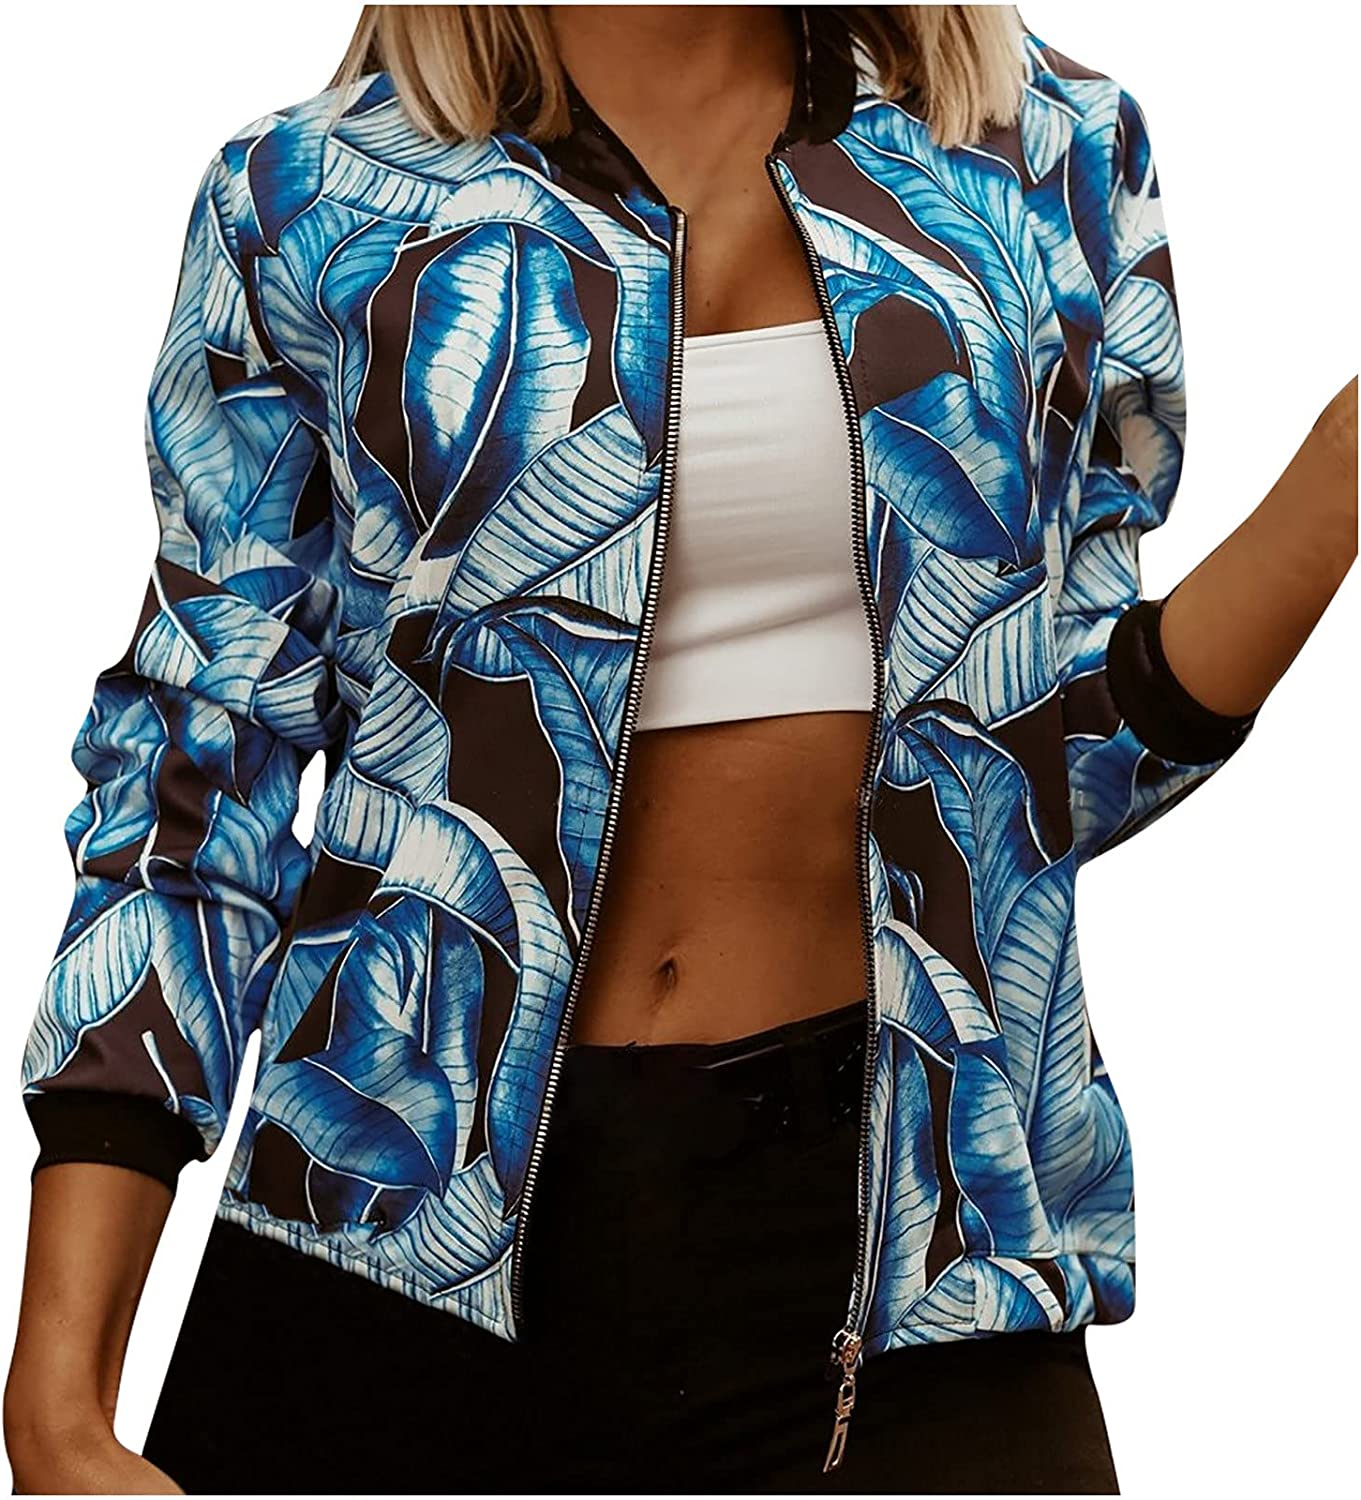 Casual Womens Jackets Fall Stitching Stand Up Collar Blouse Thin Full Zipper Top Short Print Outwear Coat